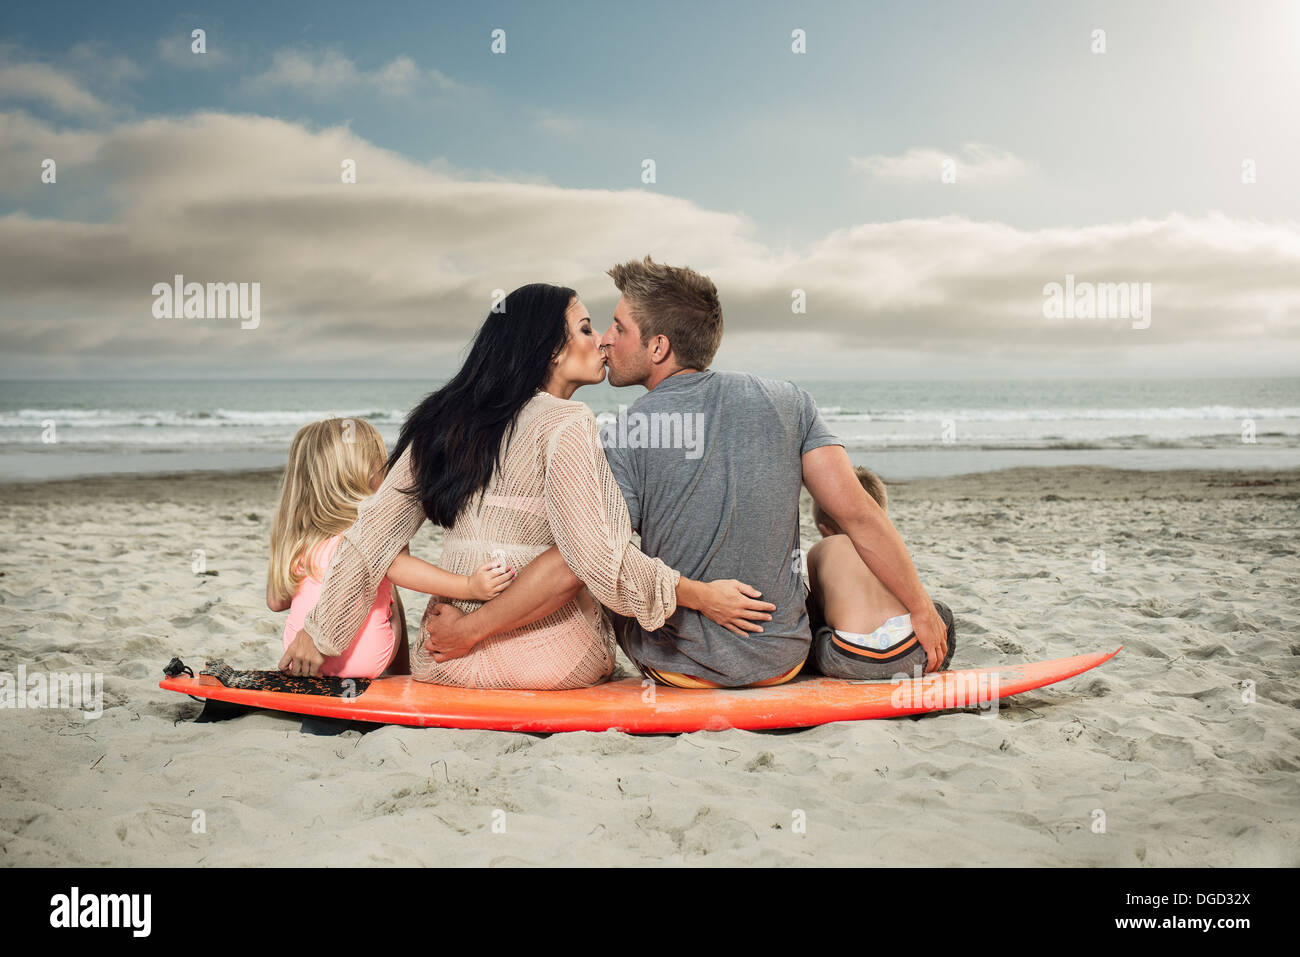 Young family sitting on surfboard on beach avec les parents s'embrasser Photo Stock